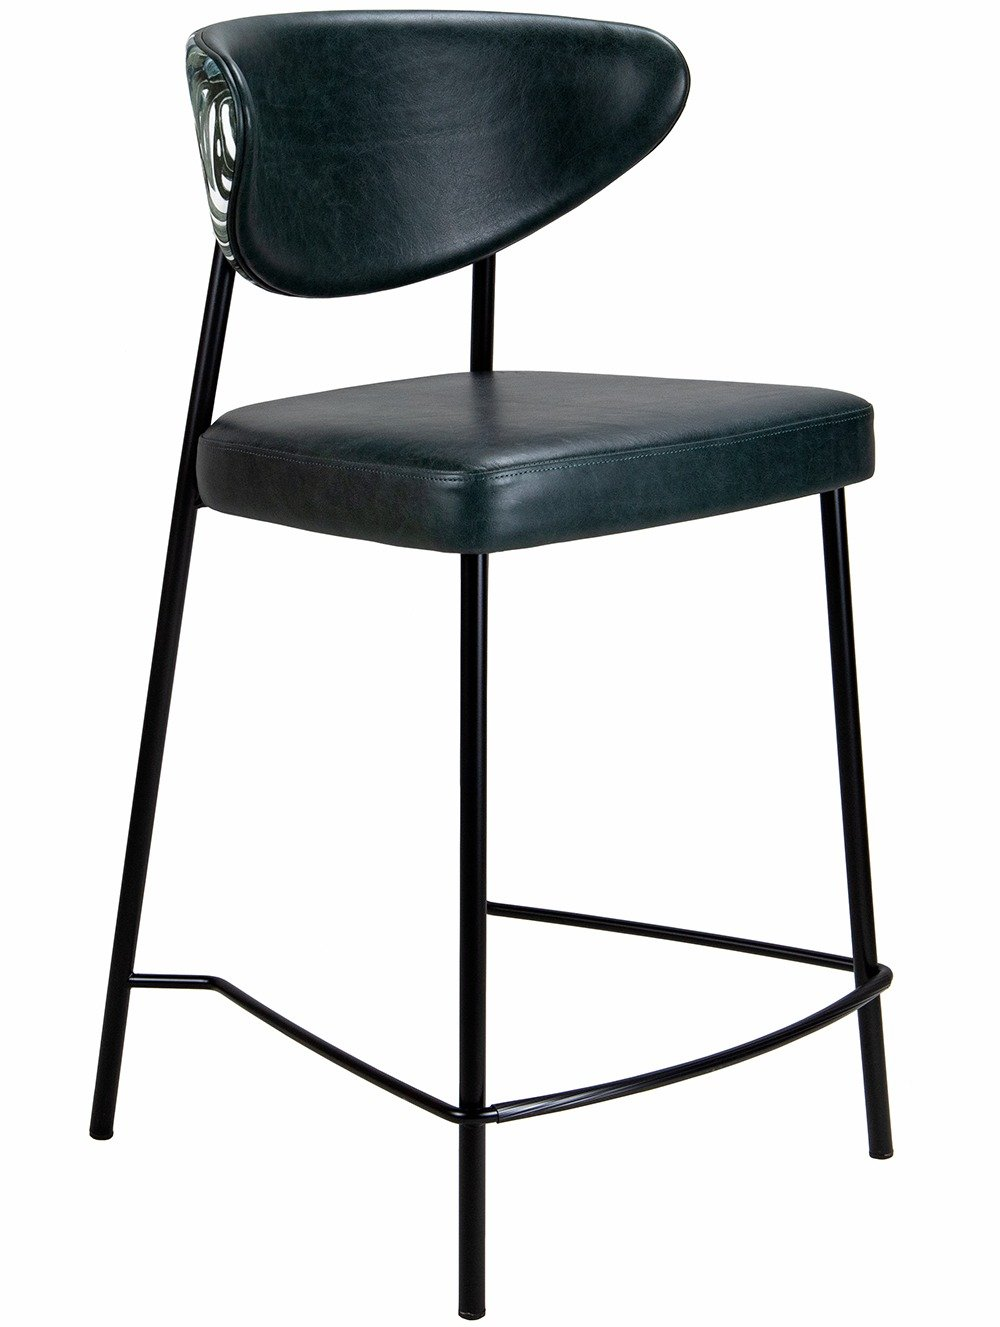 Ivy Mid High Stool from a 45 degree angle